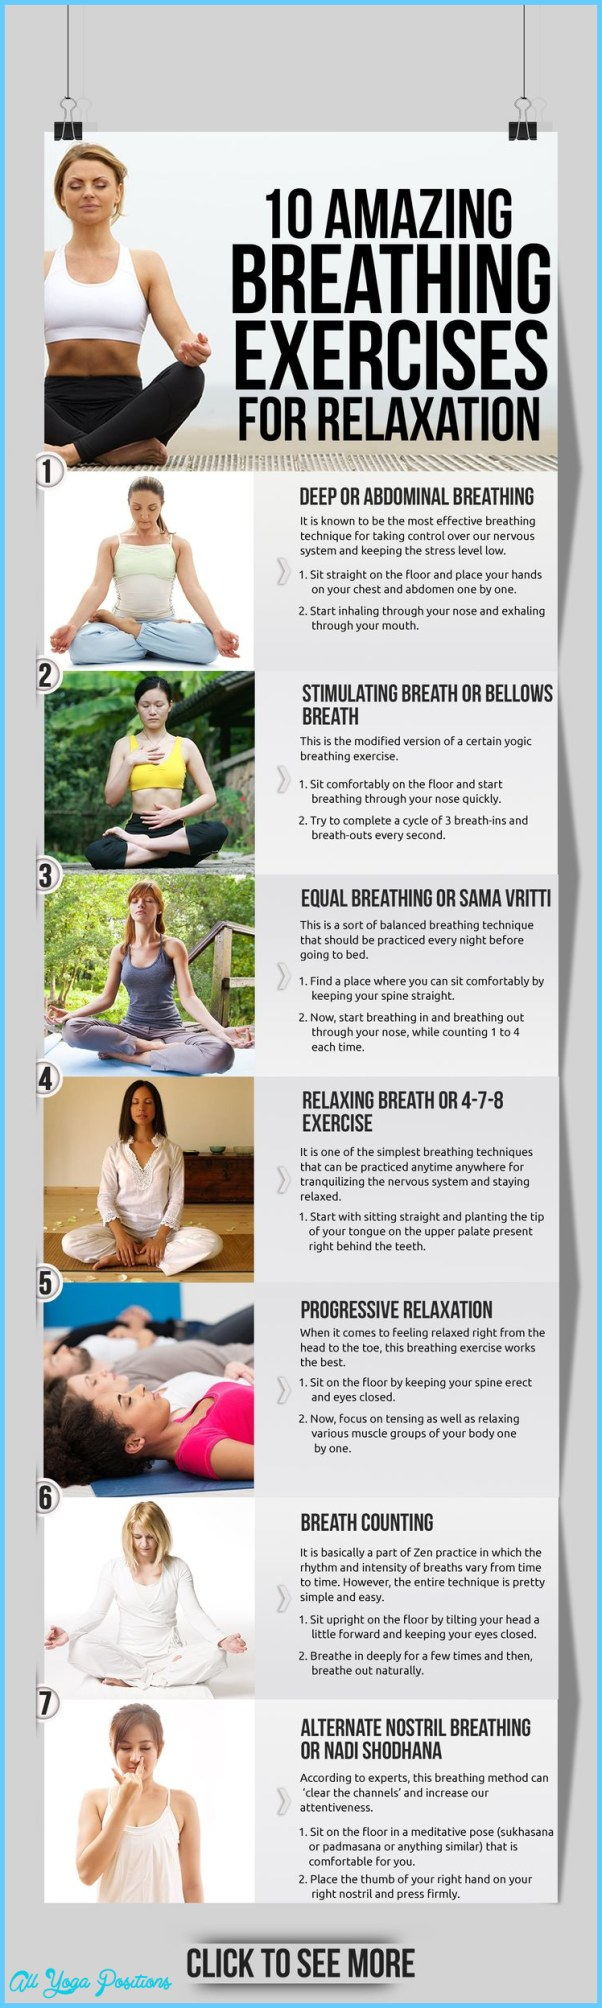 Yoga Breathing Exercises For Asthma_14.jpg